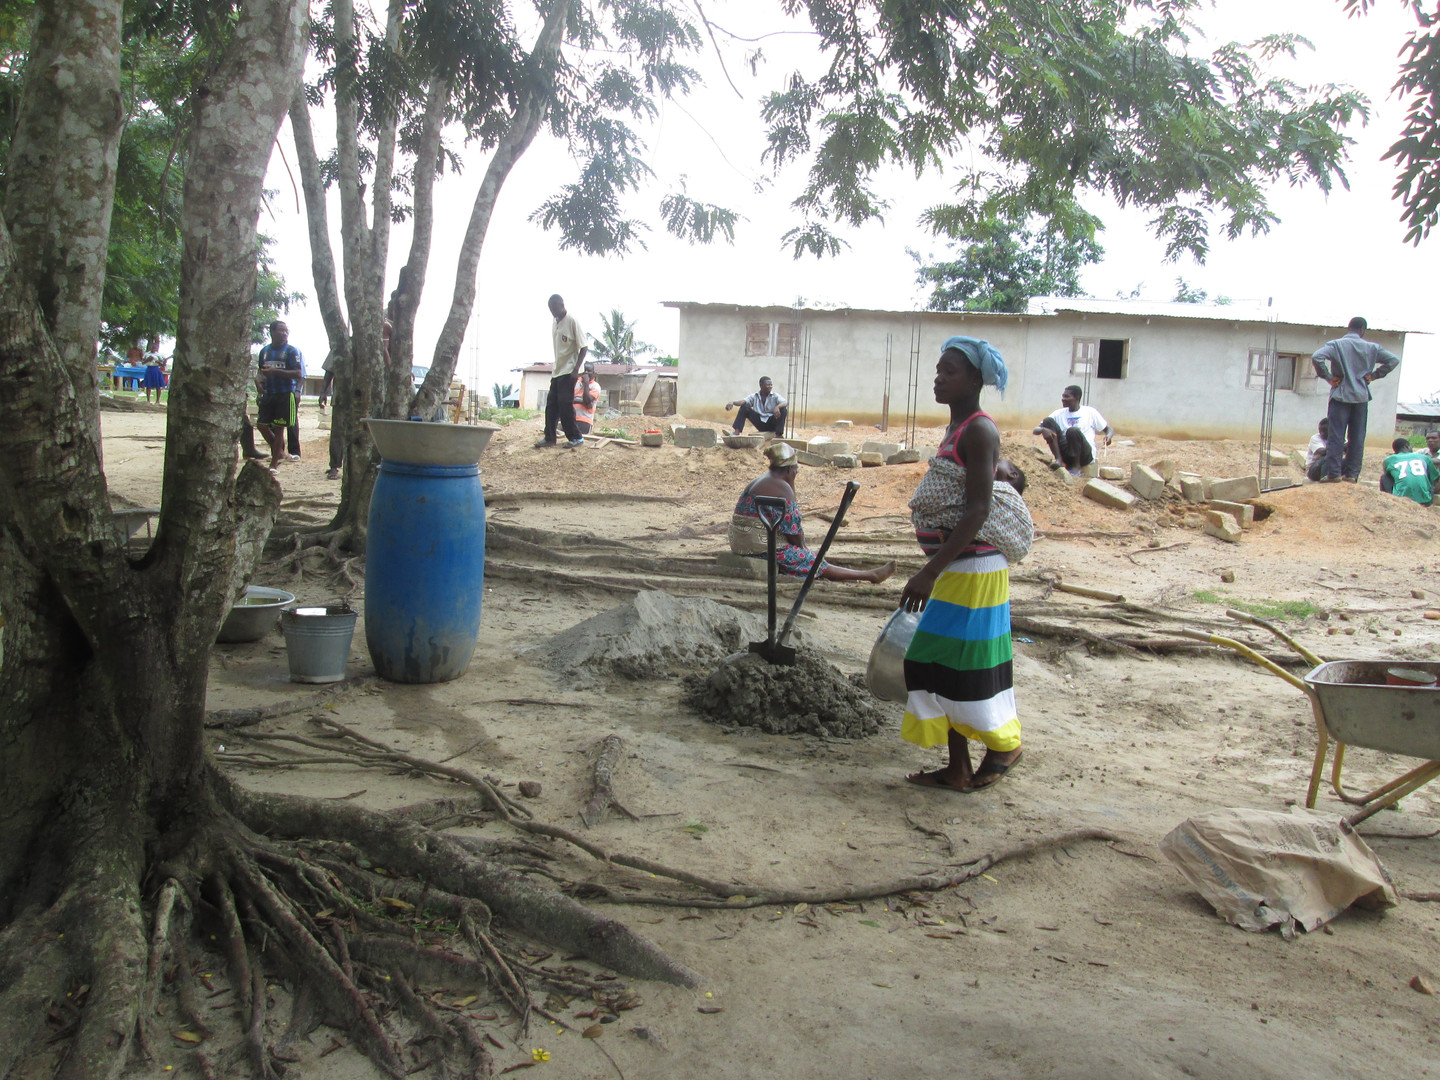 Villagers working on construction.